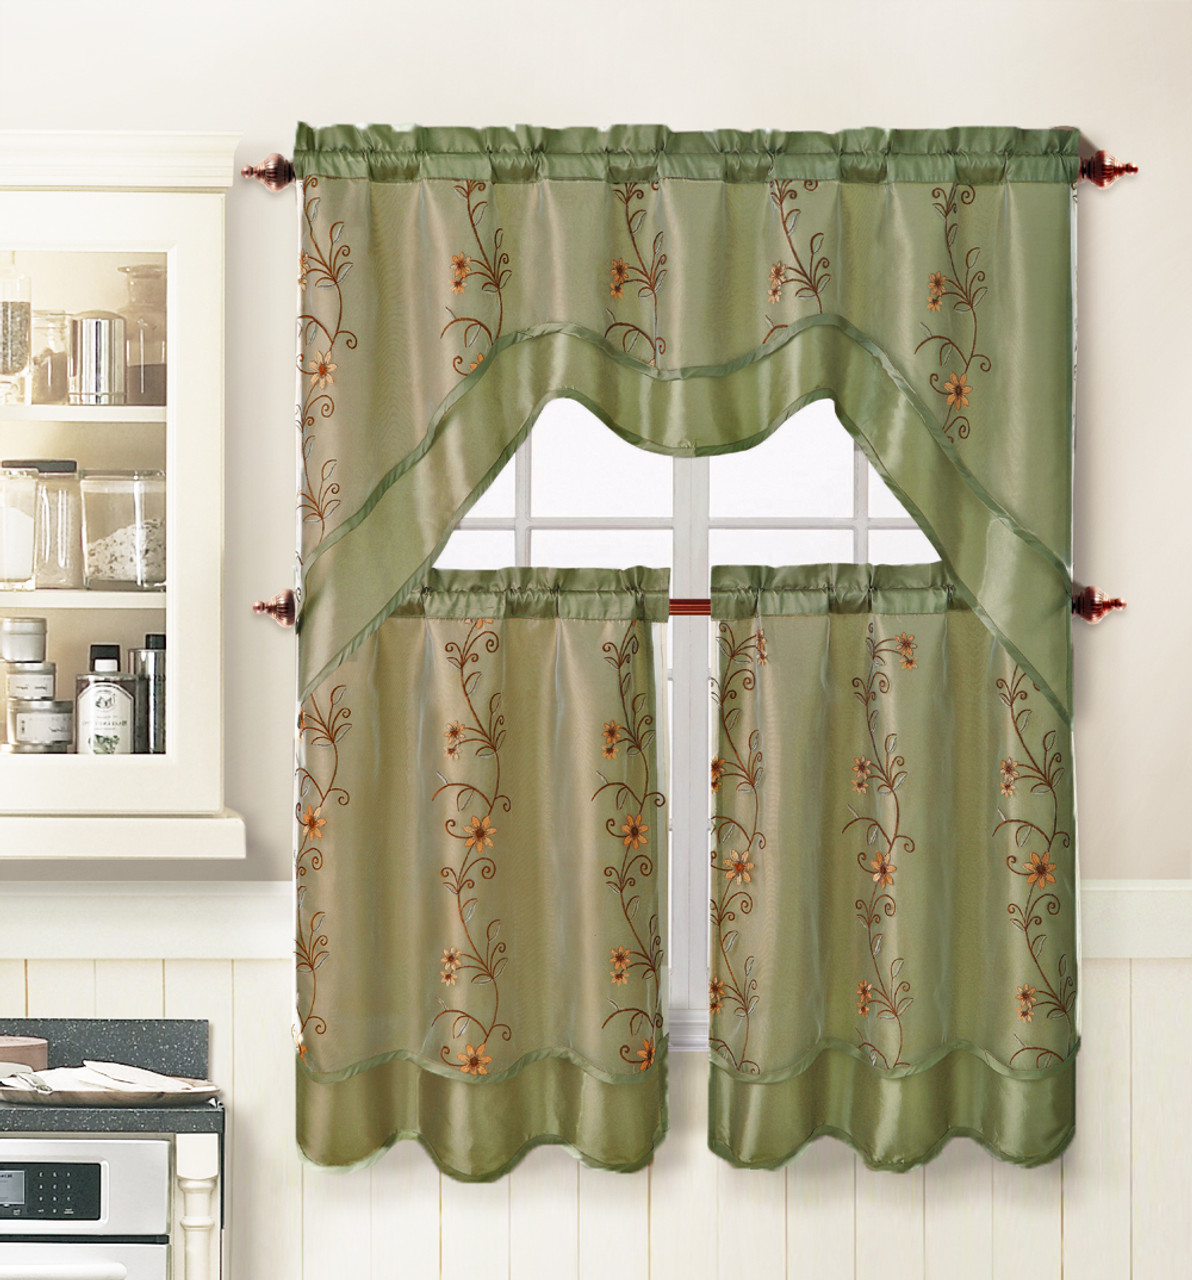 Sage Green 3 Piece Kitchen Window Curtain Treatment Set 2 Layer Embroidered Sheer Design 2 Tiers And 1 Valance My Infinity Store